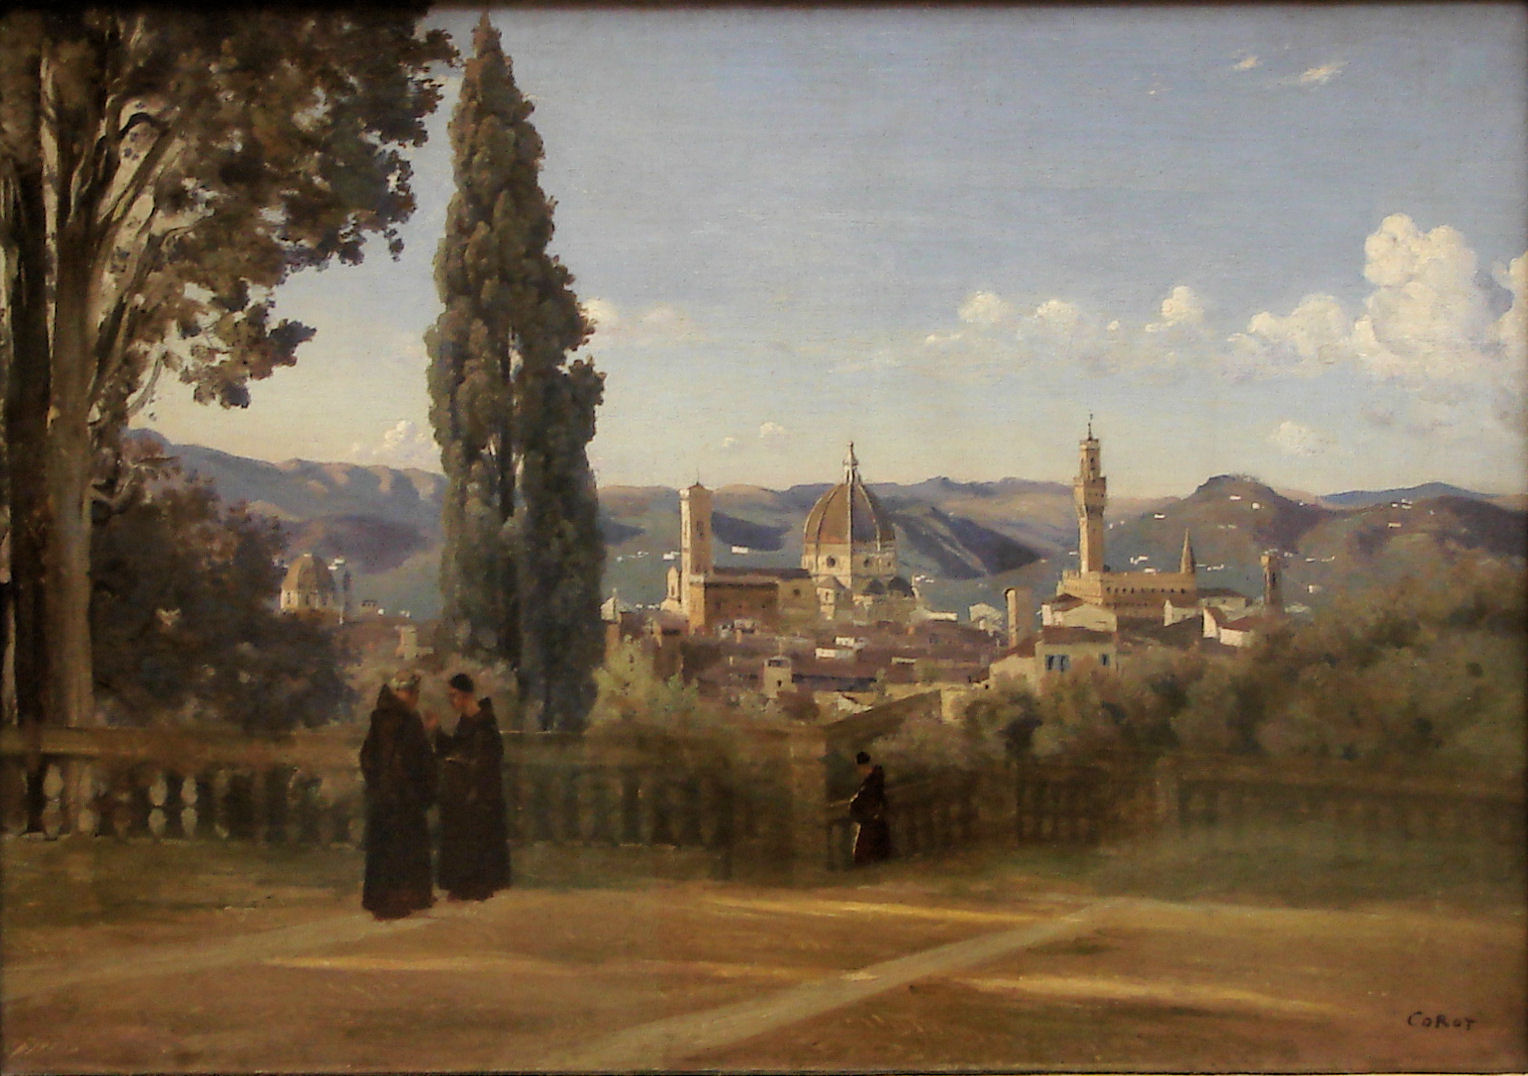 http://fr.academic.ru/pictures/frwiki/76/Louvre_corot_florence_rf2598.jpg